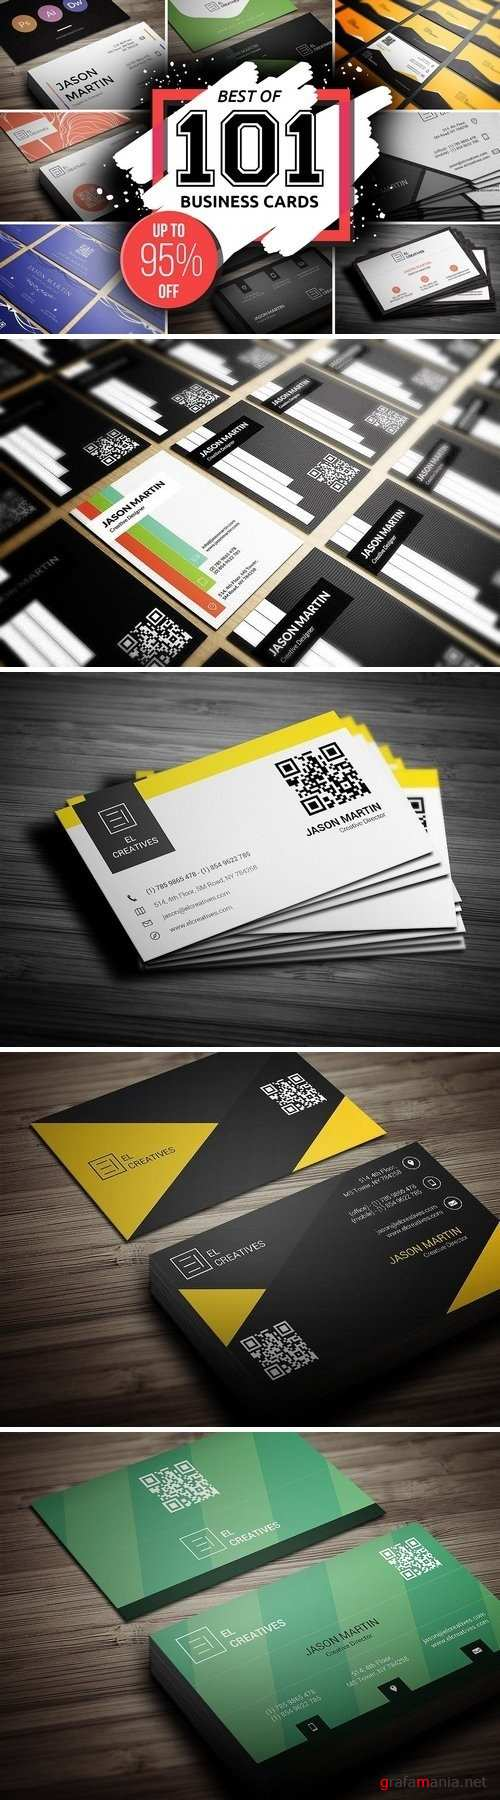 Best 101 Prime Business Cards Bundle - 2159023